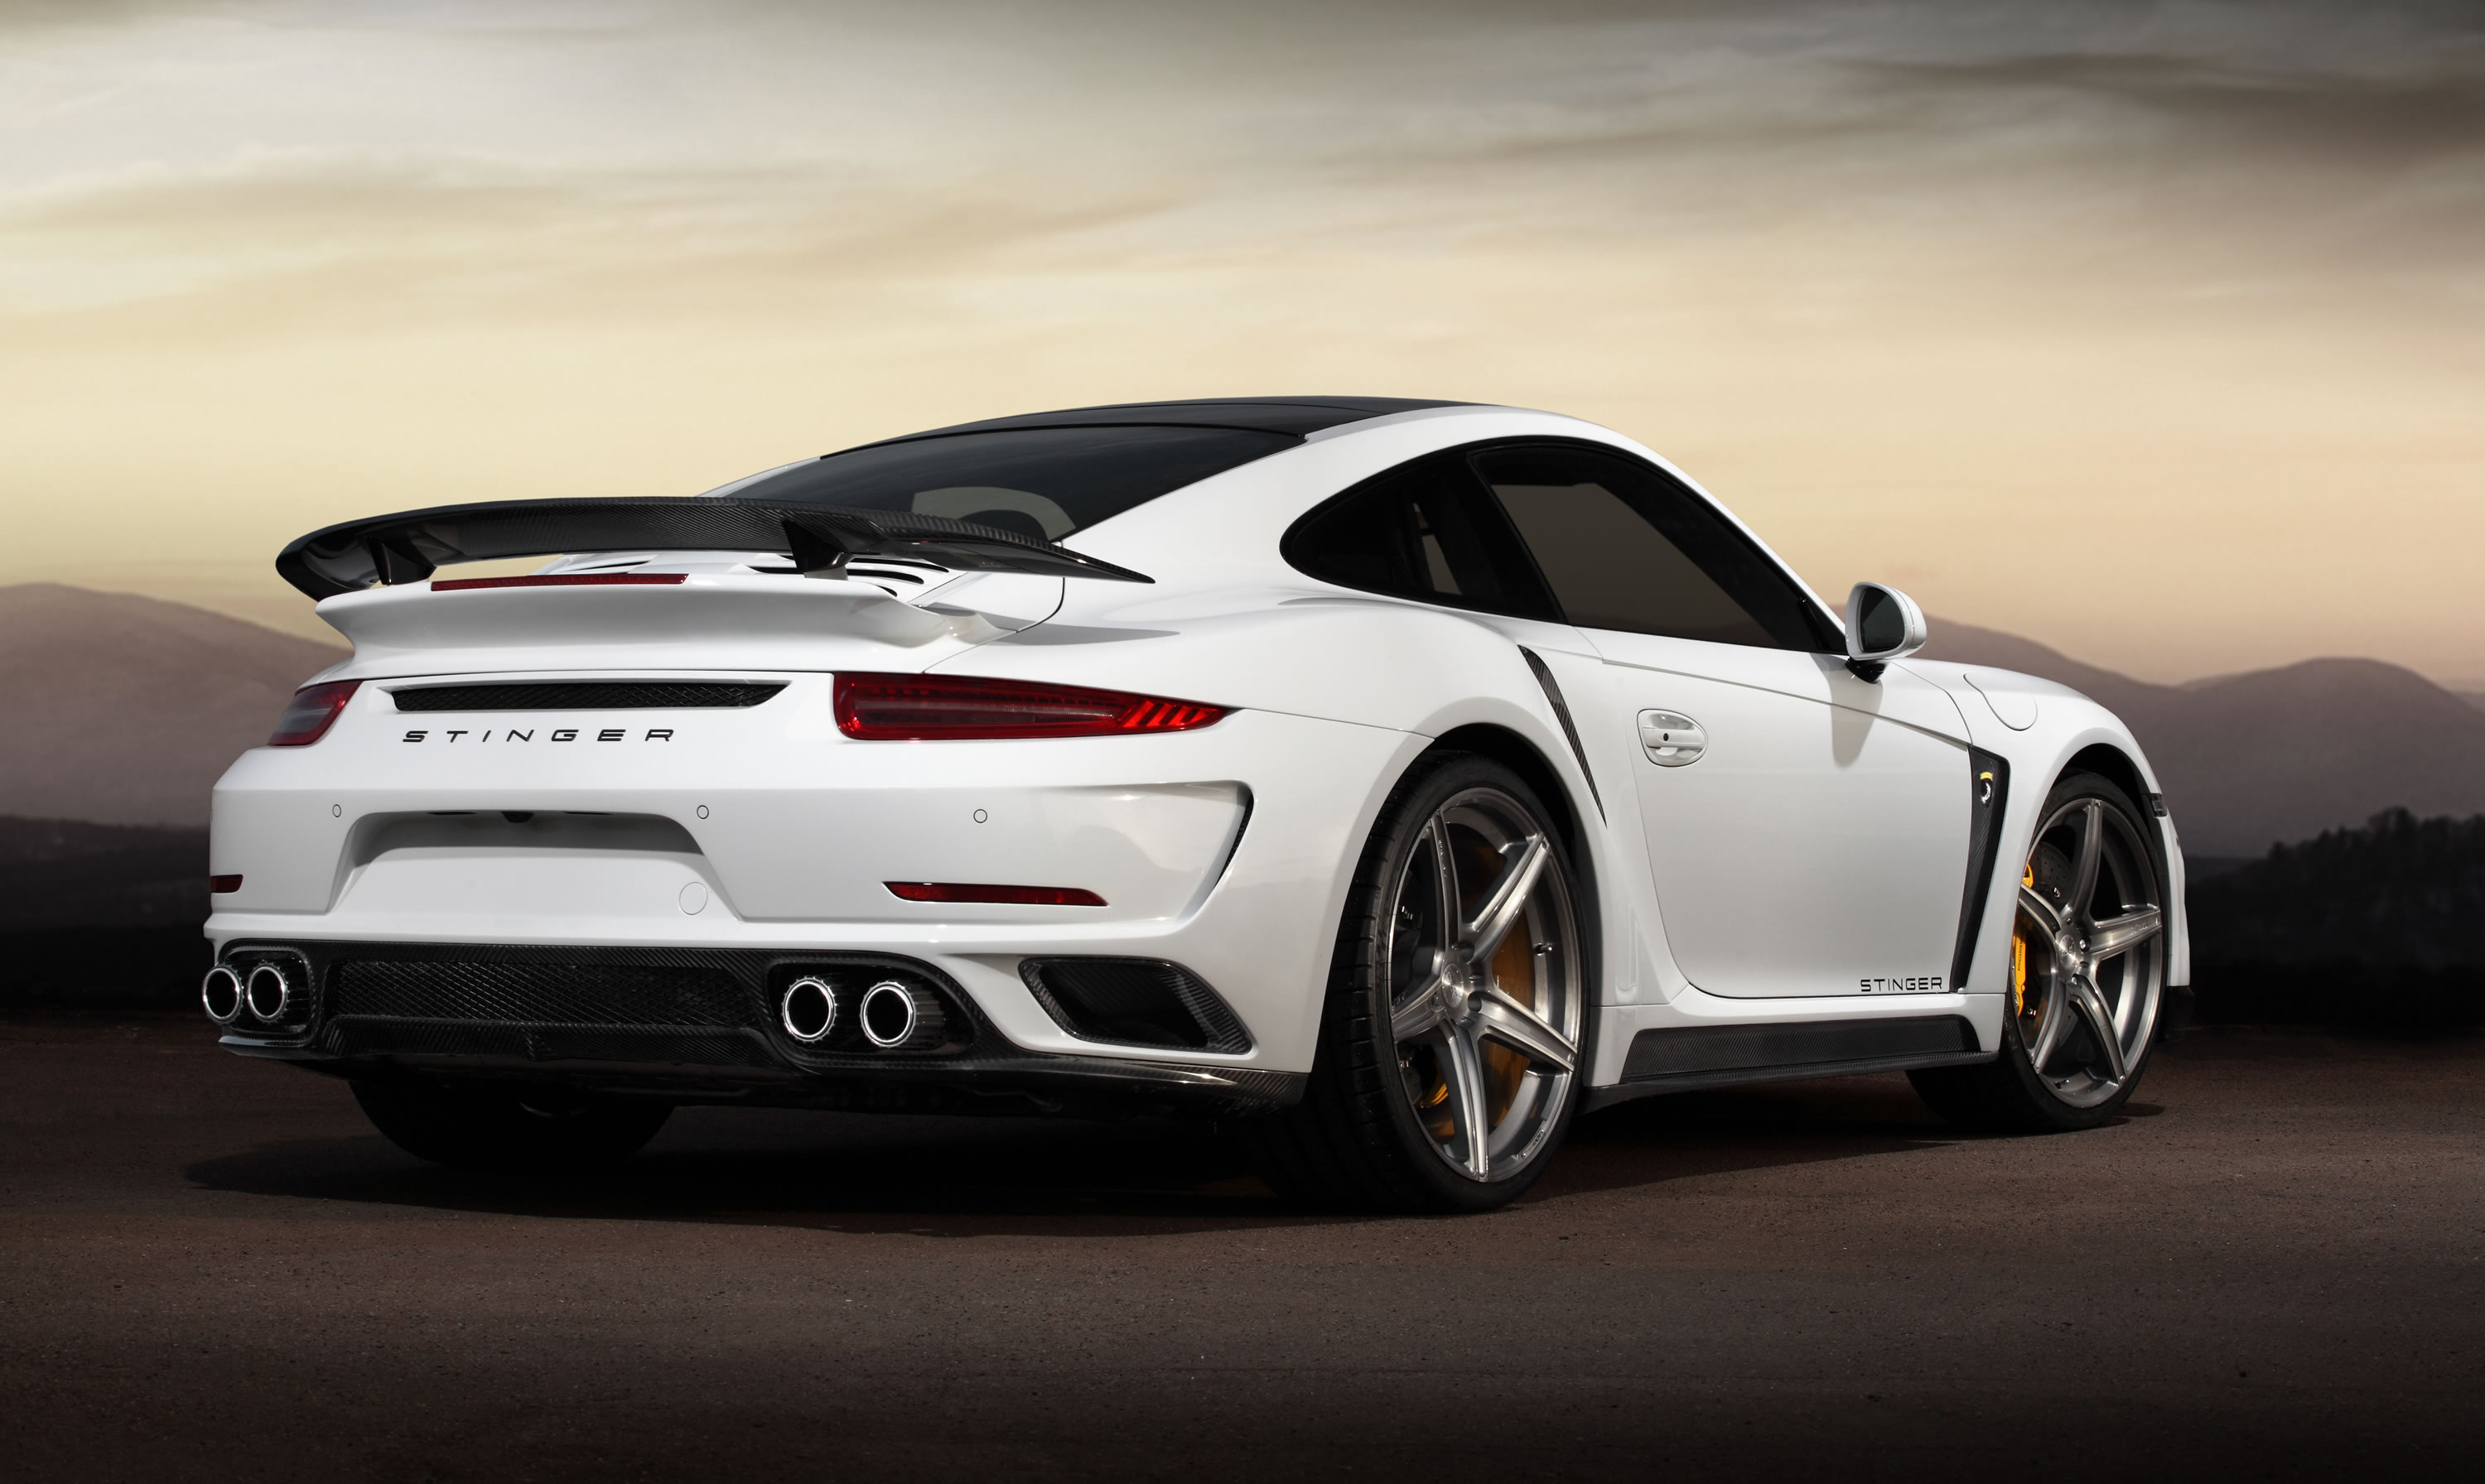 the tuner calls this the most sophisticated project they have - 2015 Porsche 911 Turbo